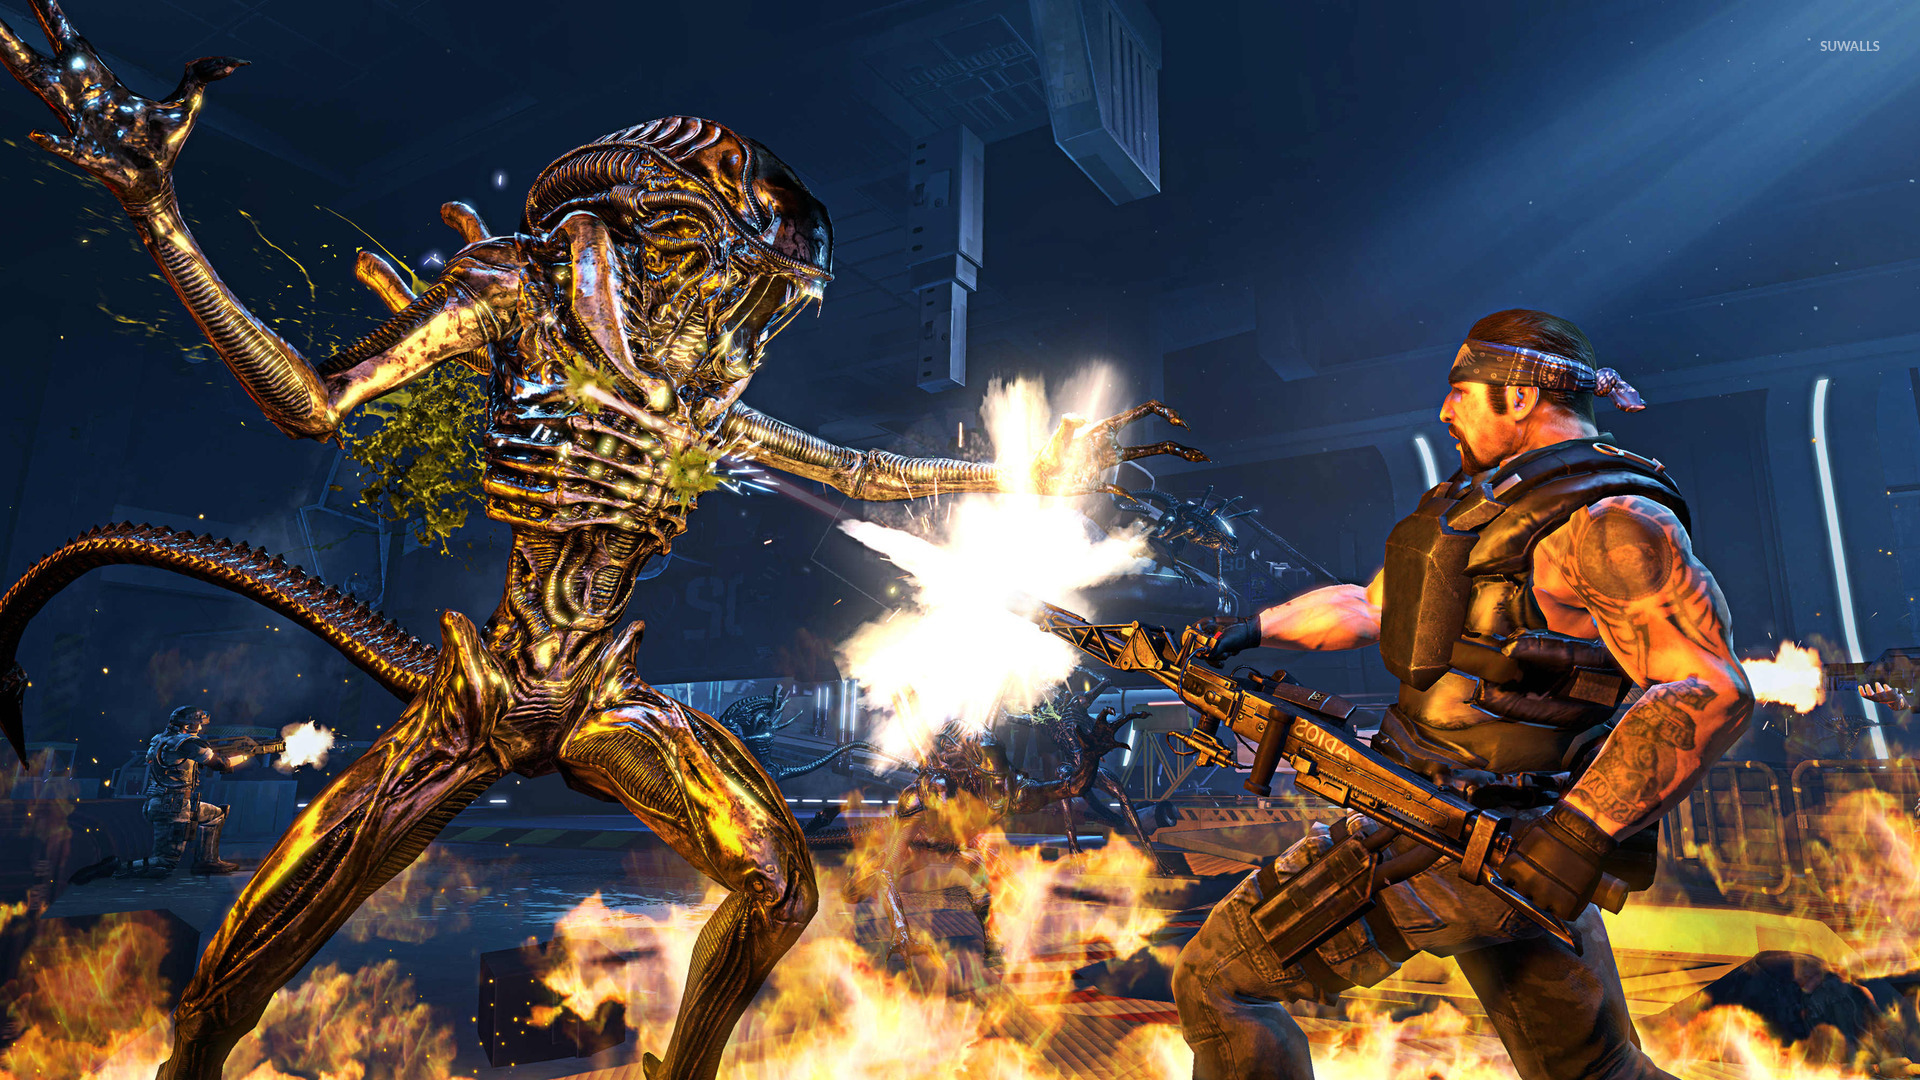 aliens colonial marines 8 wallpaper game wallpapers